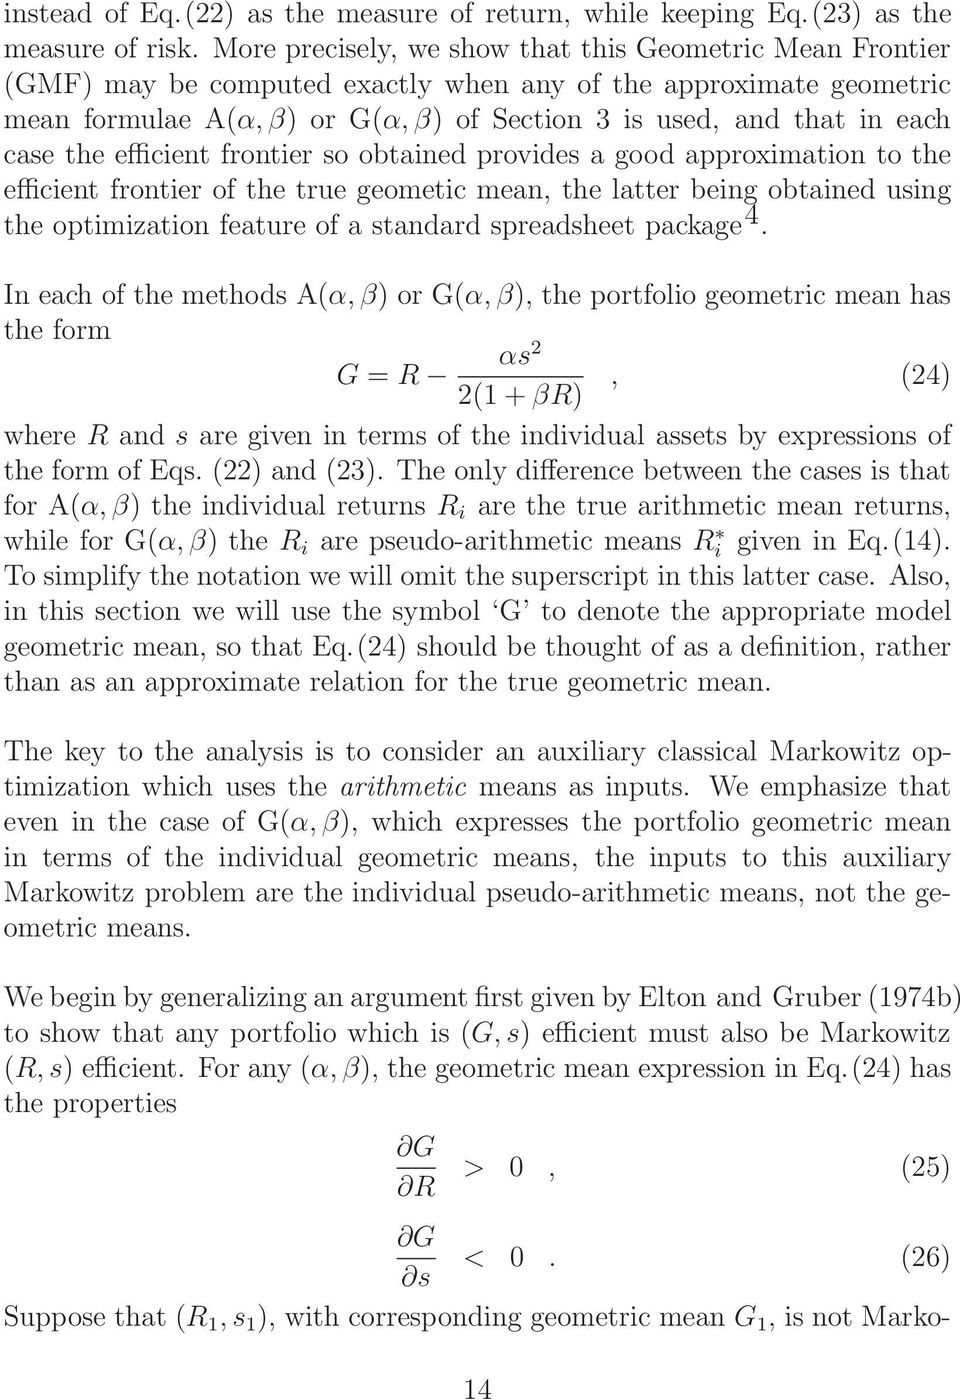 case the efficient frontier so obtained provides a good approximation to the efficient frontier of the true geometic mean, the latter being obtained using the optimization feature of a standard